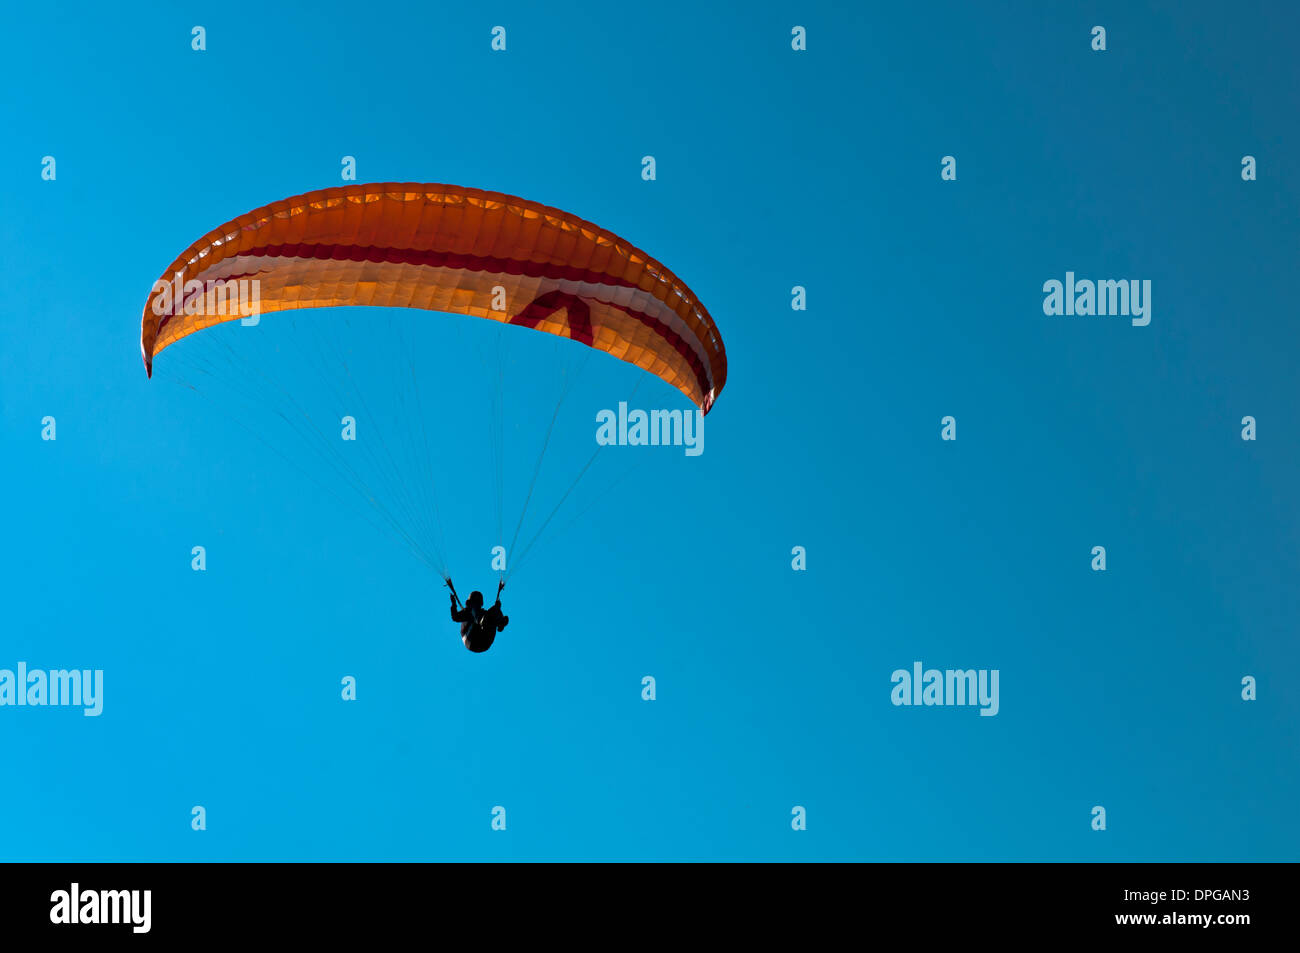 Paraglider on landing approach - Stock Image